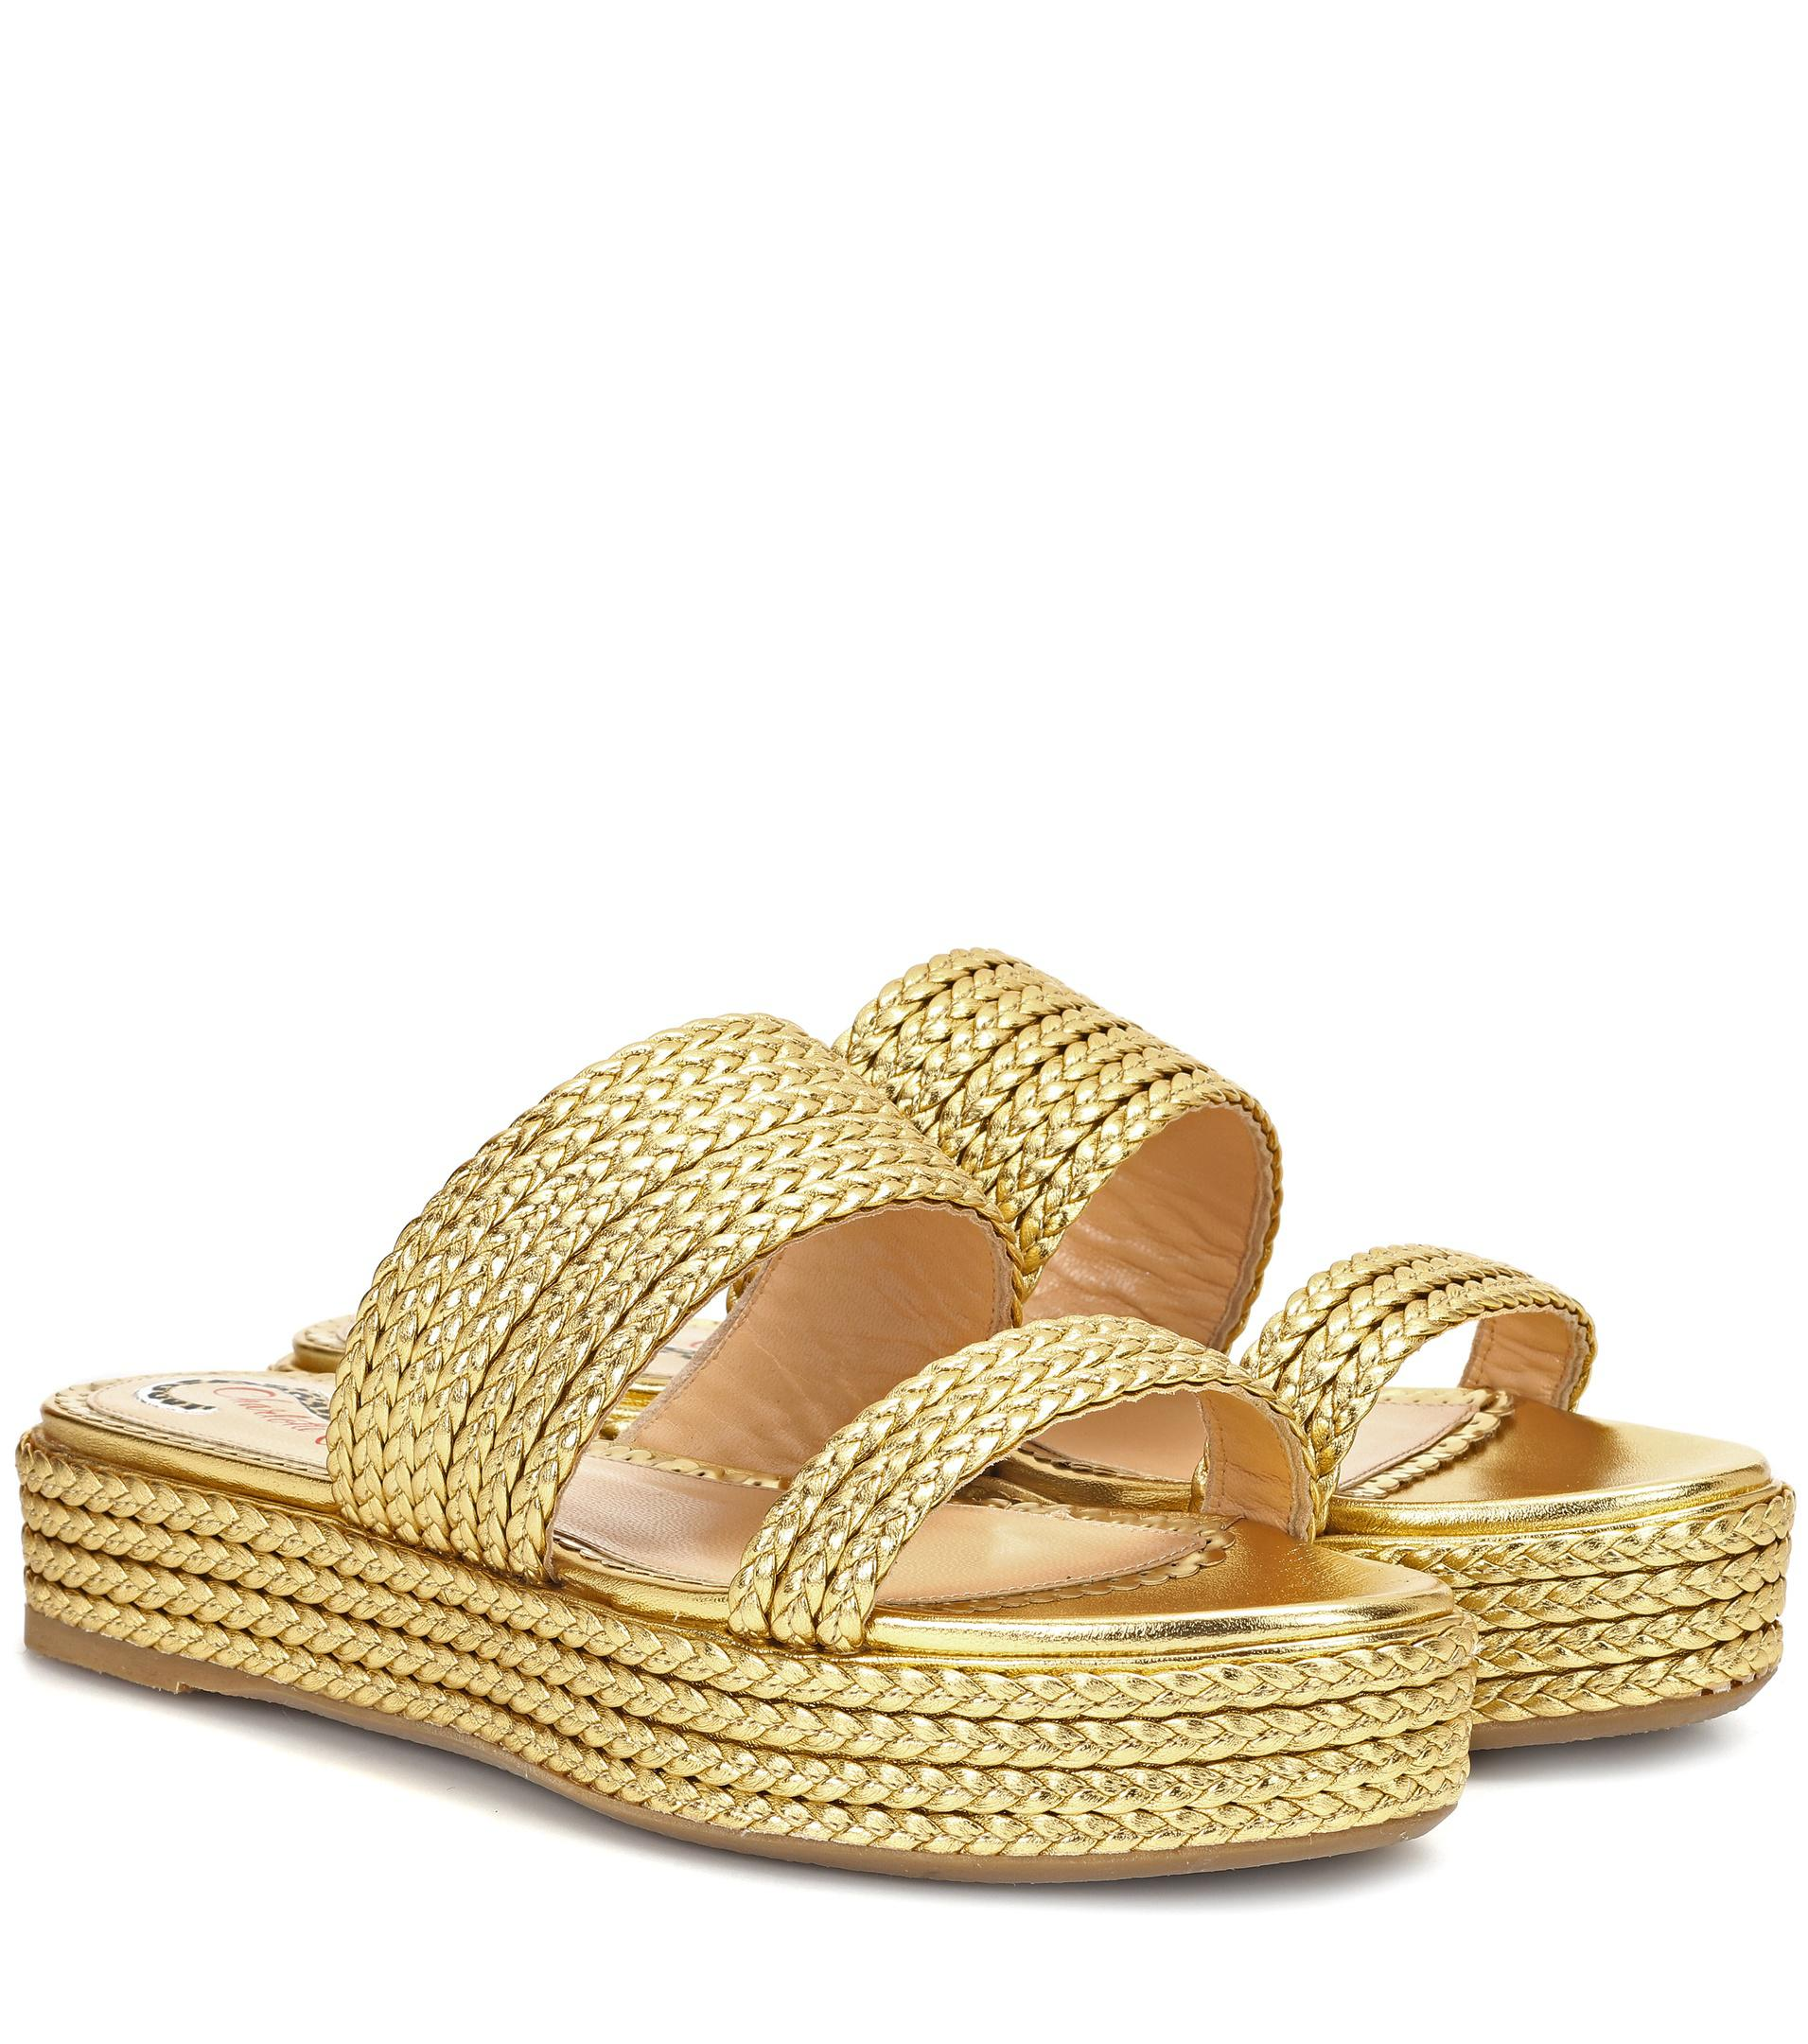 Cheap Price Wholesale Price Buy Cheap Classic Charlotte Olympia Woven jute sandals 3t9Z0wU